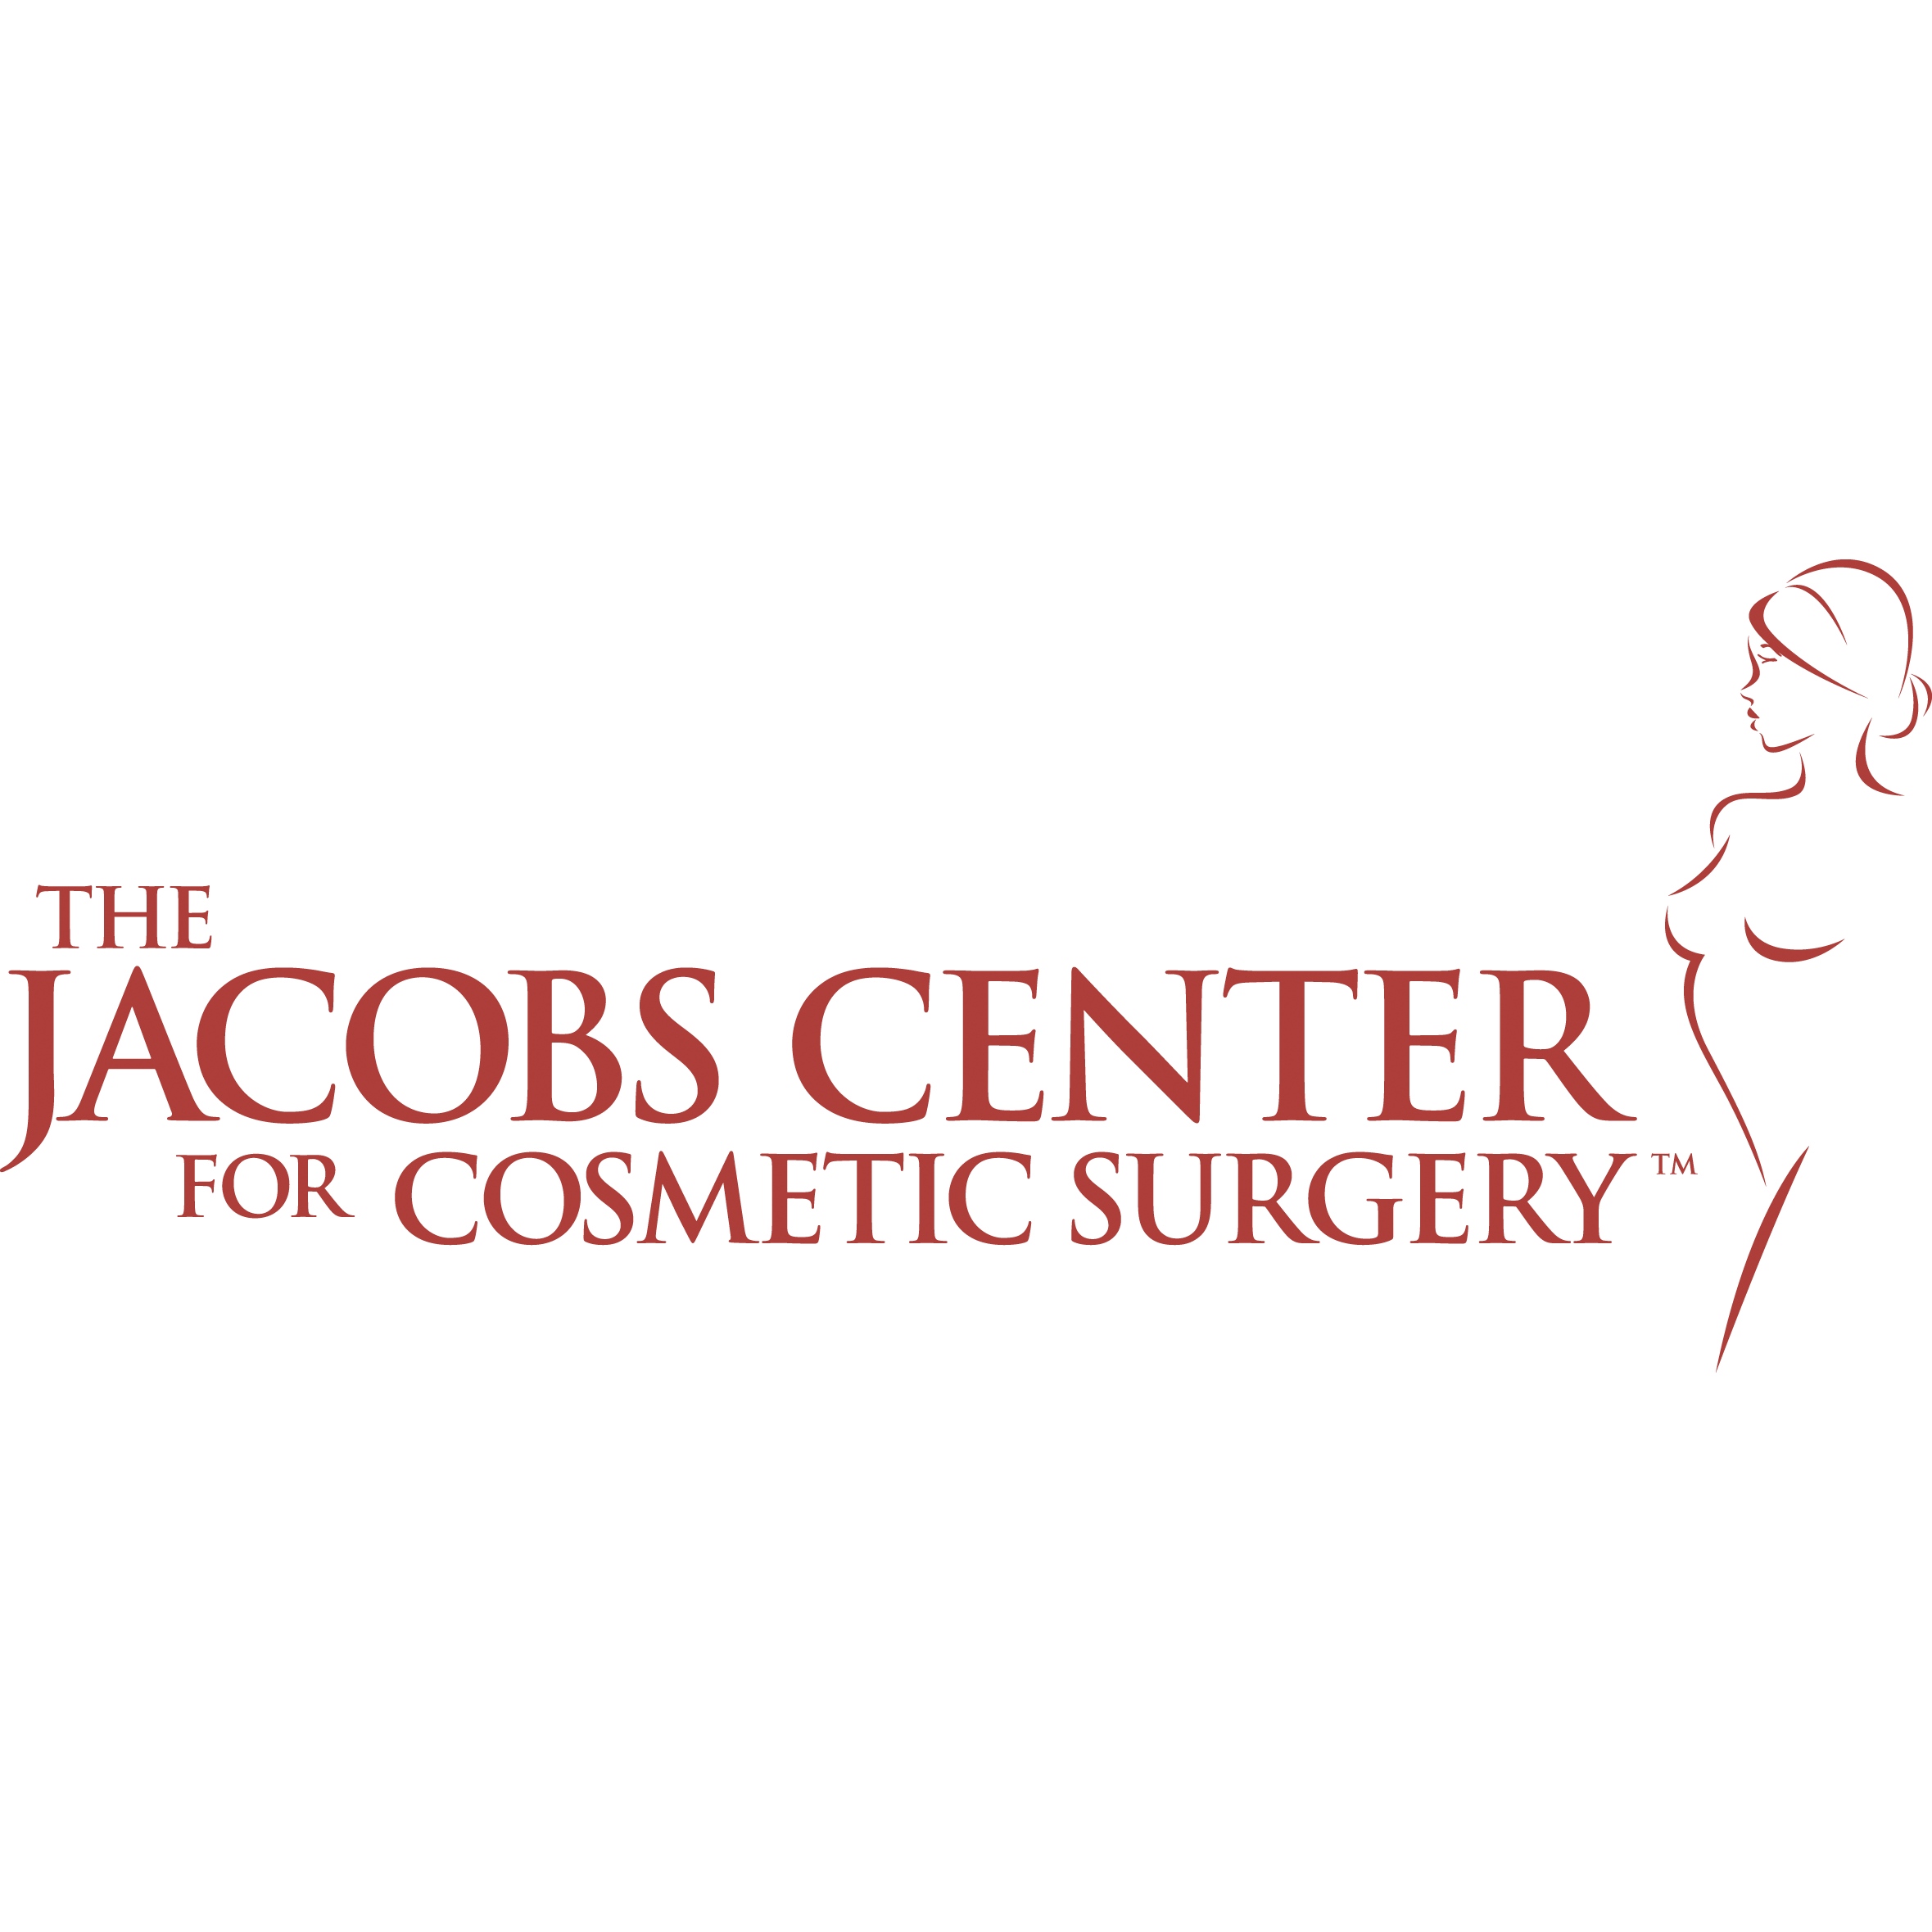 The Jacobs Center for Cosmetic Surgery - Healdsburg, CA 95448 - (707)473-0220 | ShowMeLocal.com